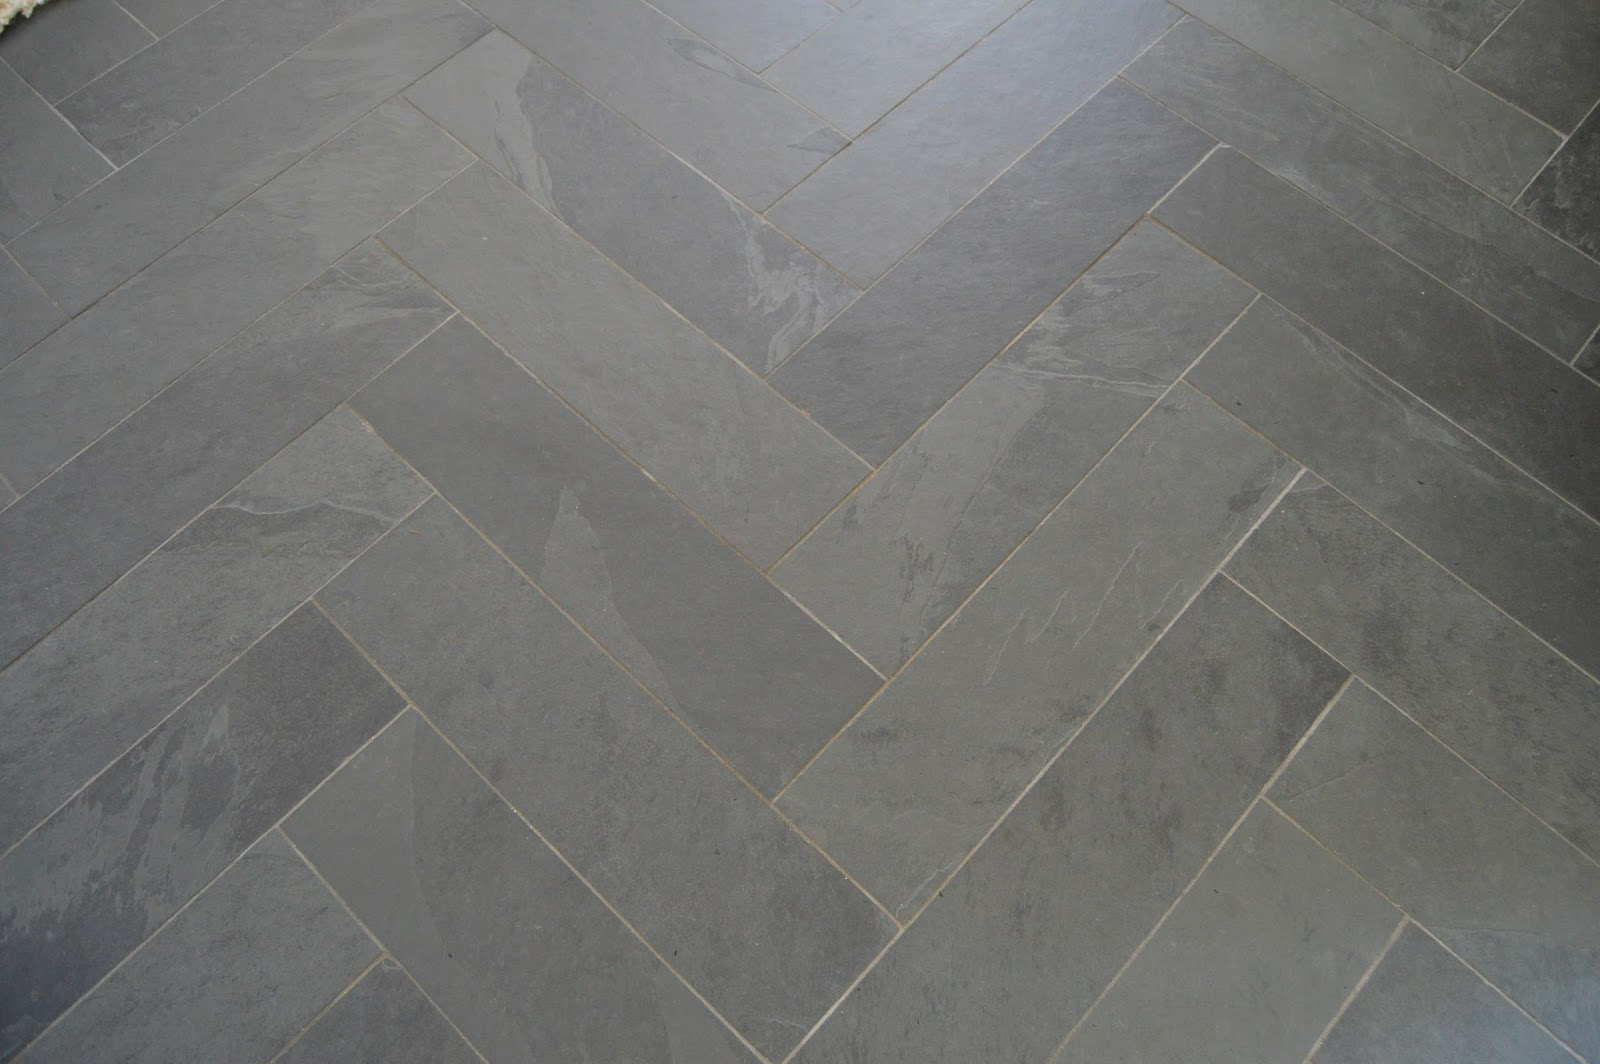 The Tiles Look Just Fine But If You Closely At Grout Lines Beautiful Light Gray Now Has Variations Of Darkness In It